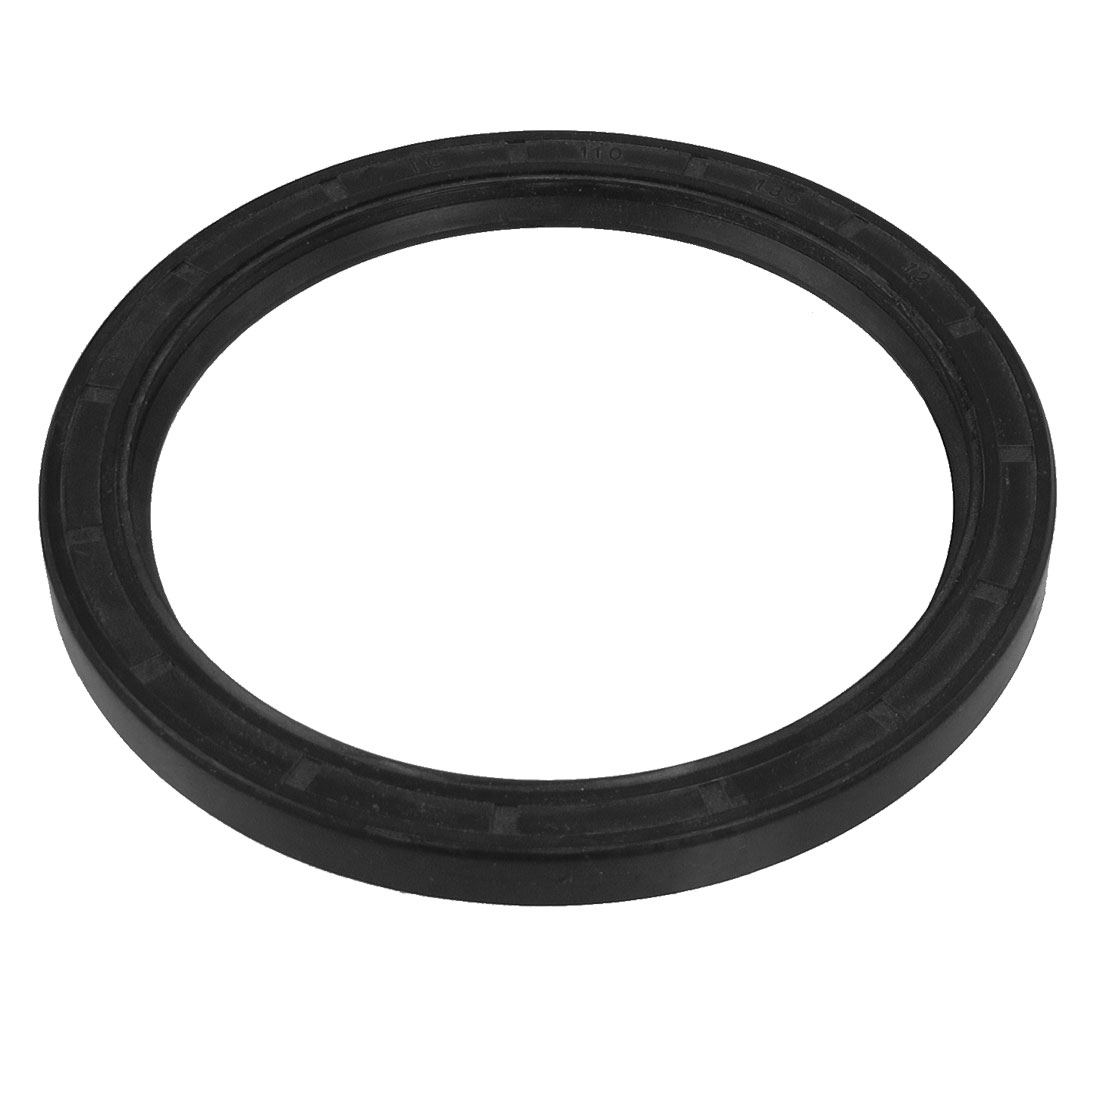 Black Nitrile Rubber Dual Lips Oil Shaft Seal TC 110mm x 135mm x 12mm